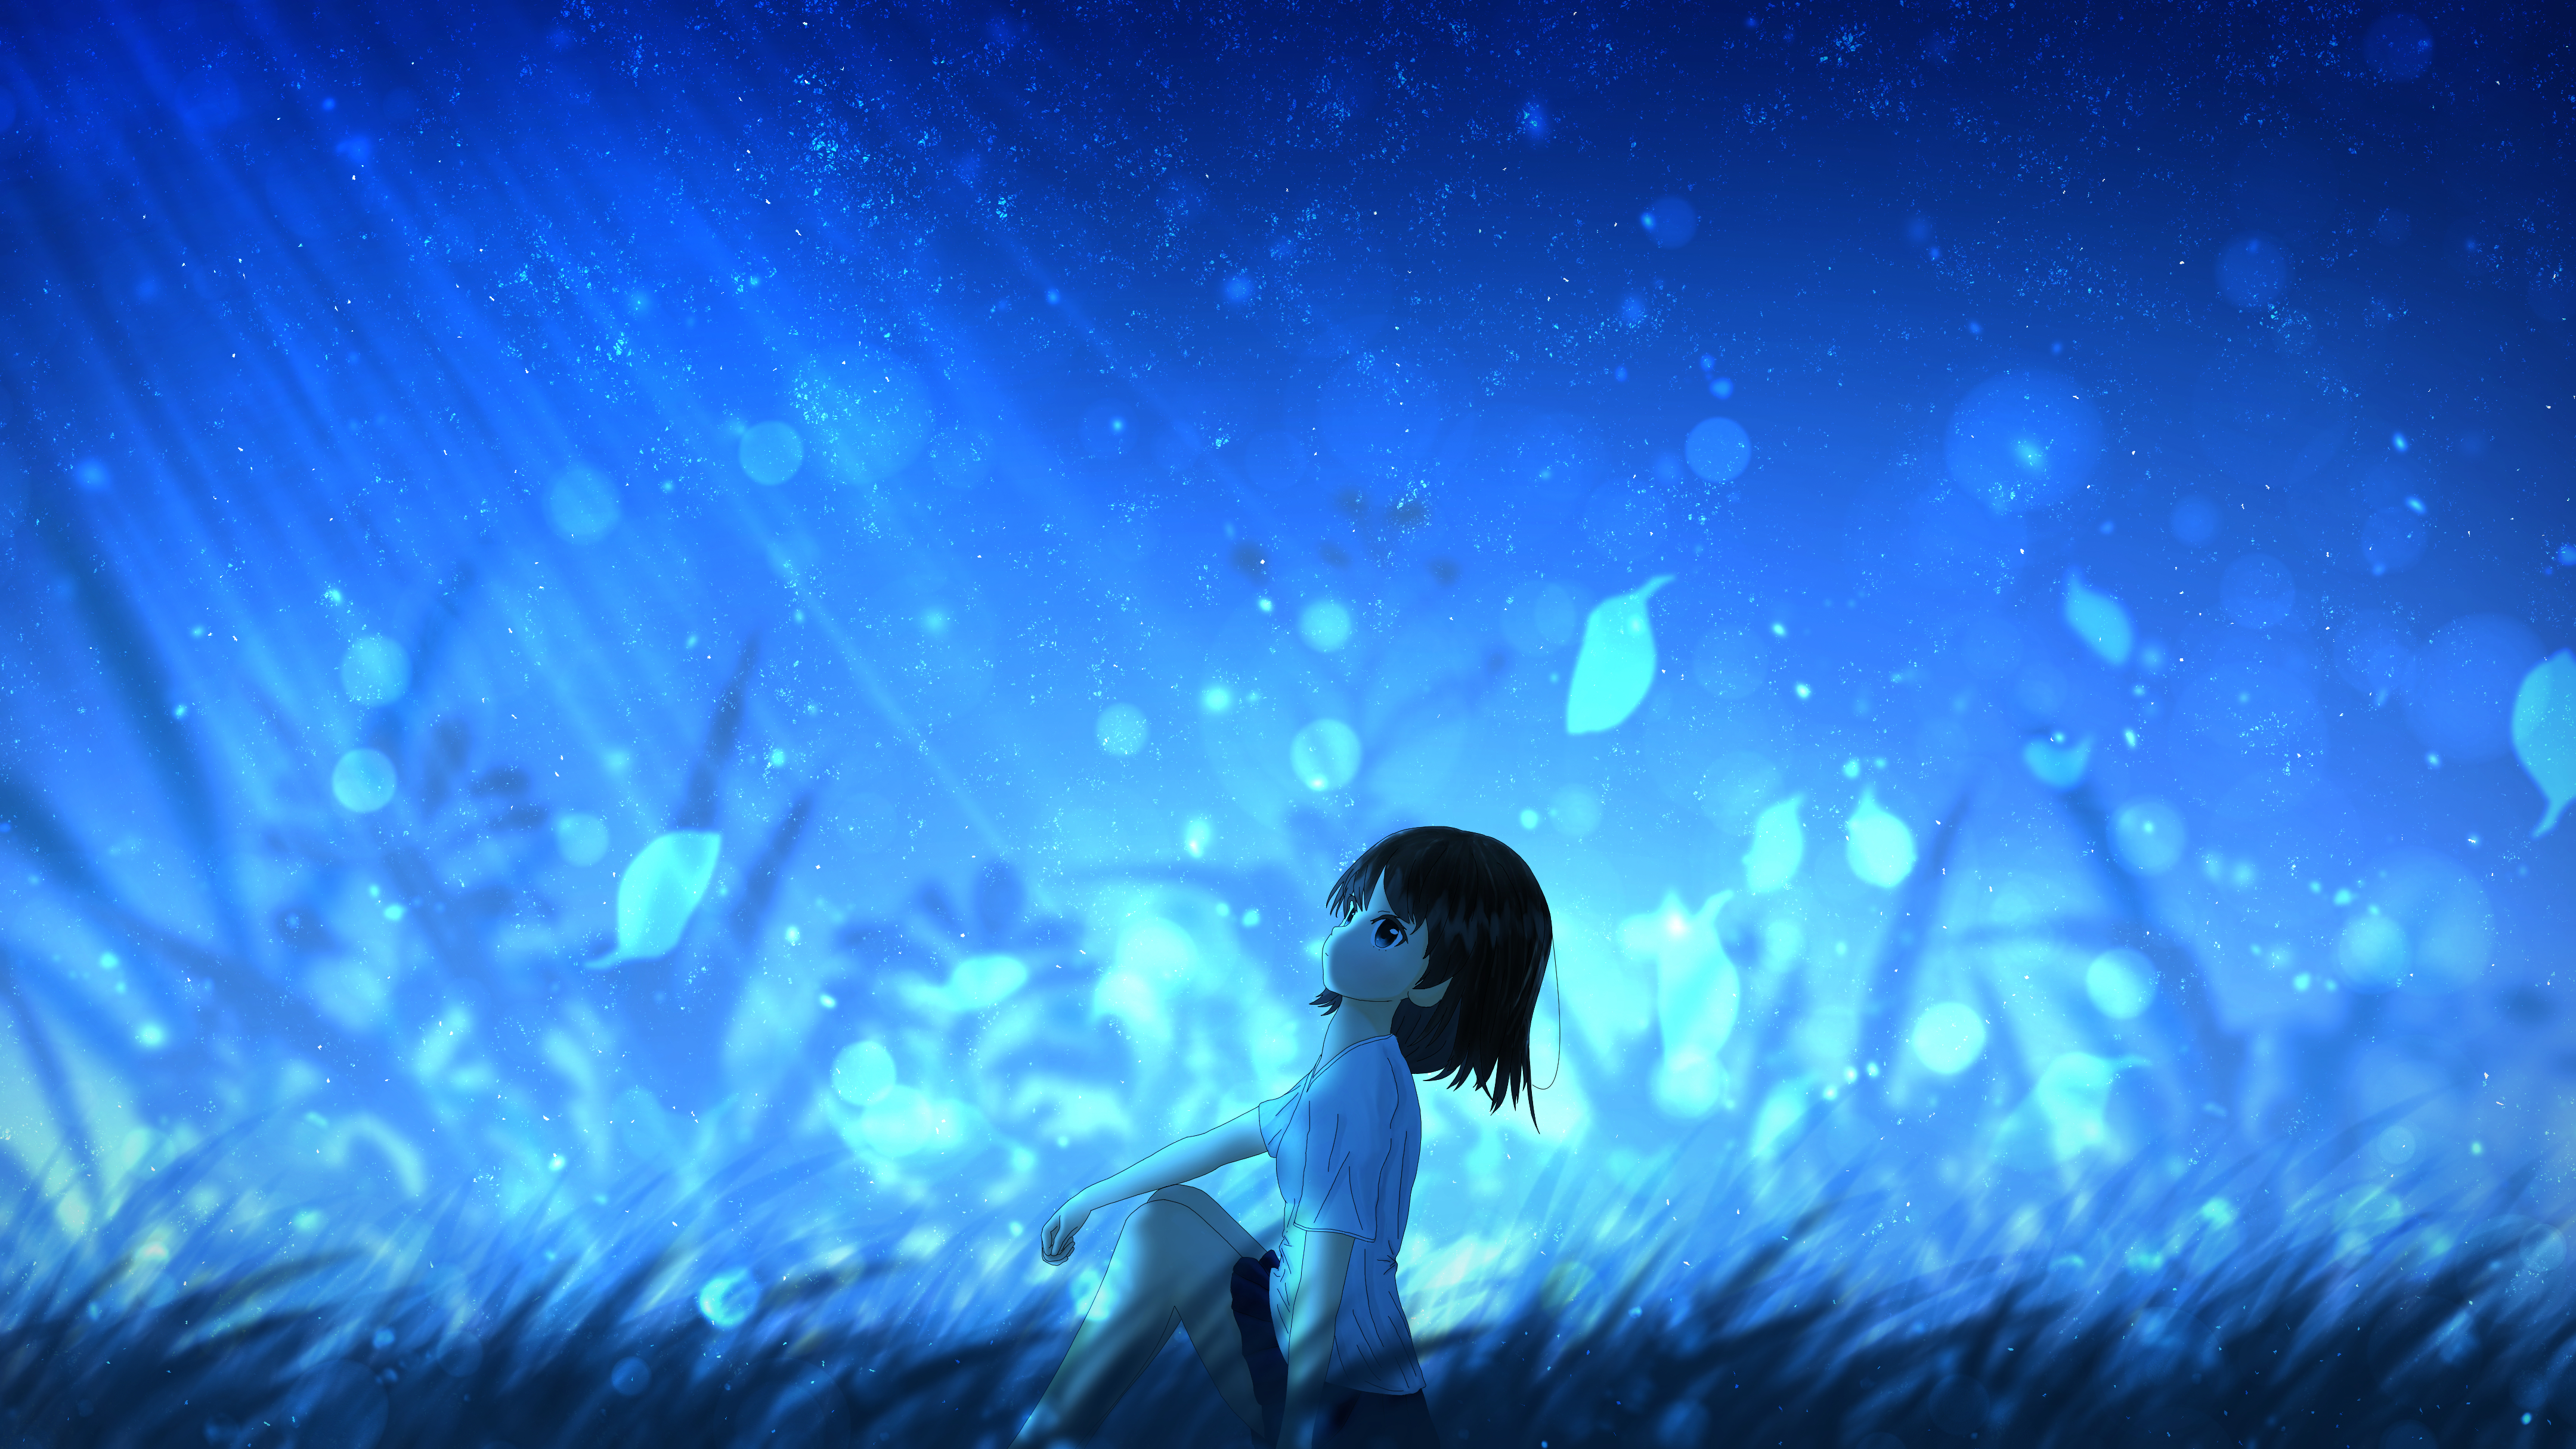 129748 download wallpaper Anime, Girl, Leaves, Wind screensavers and pictures for free